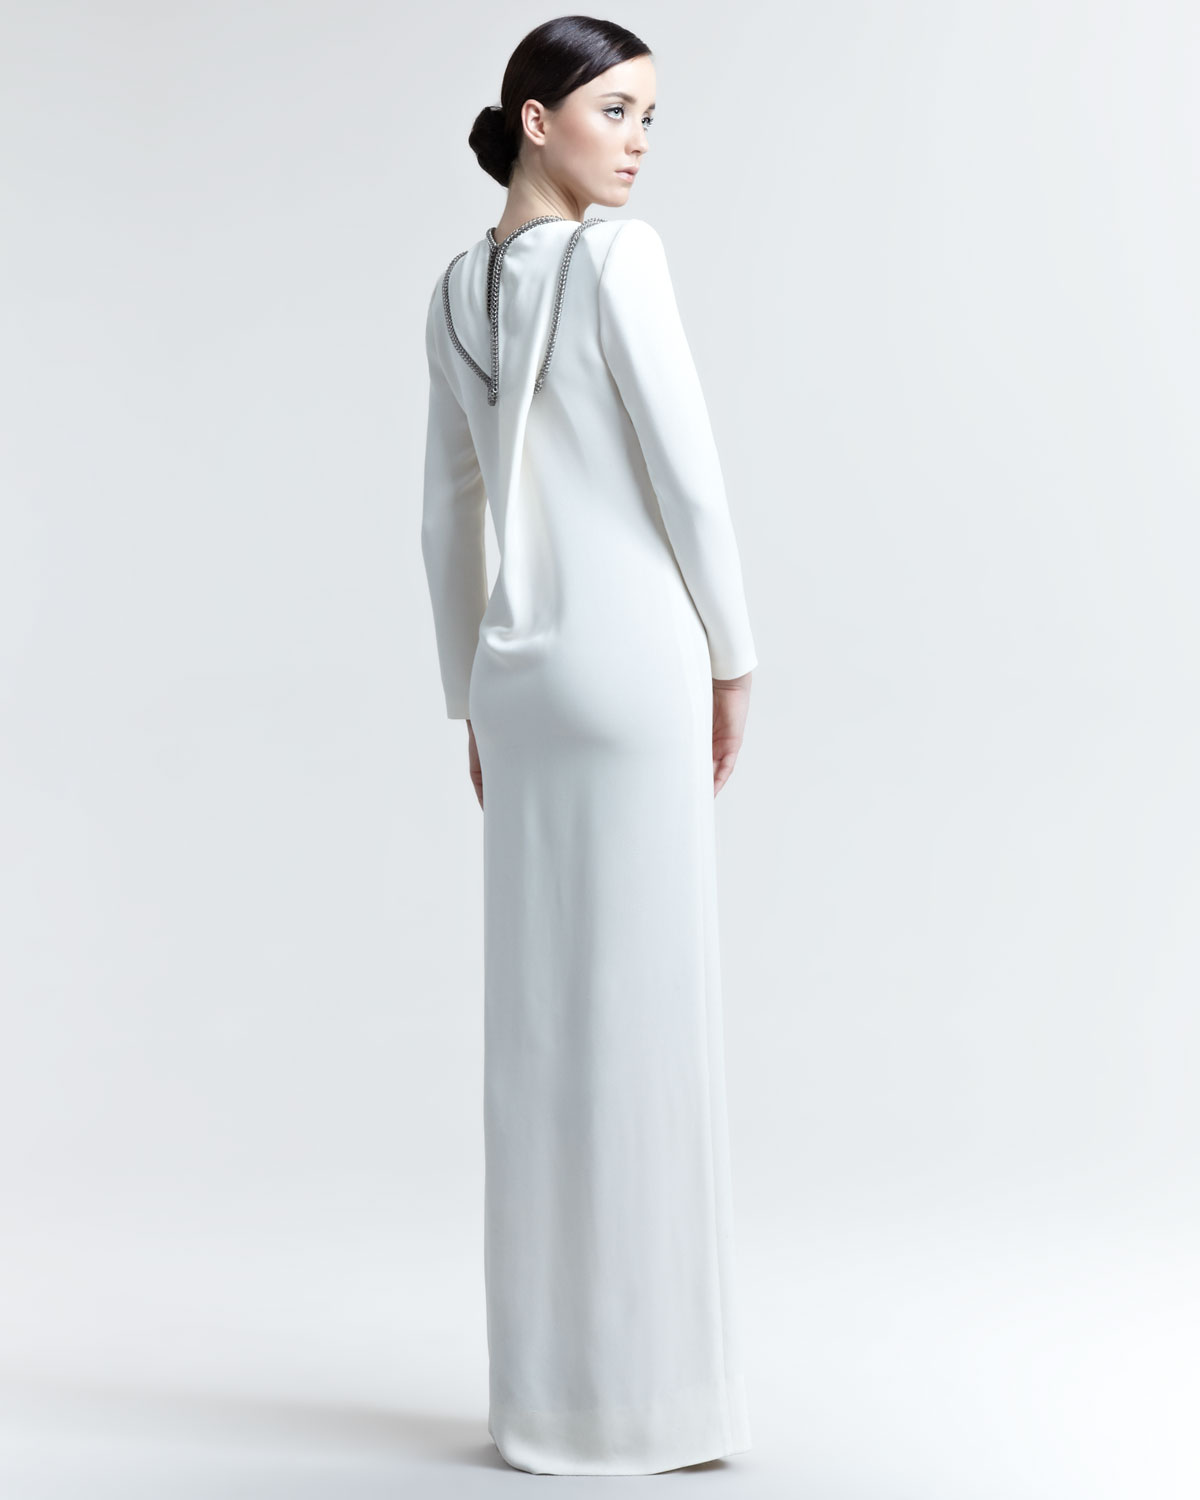 Lyst - Saint Laurent Chaintrimmed Longsleeve Gown in White